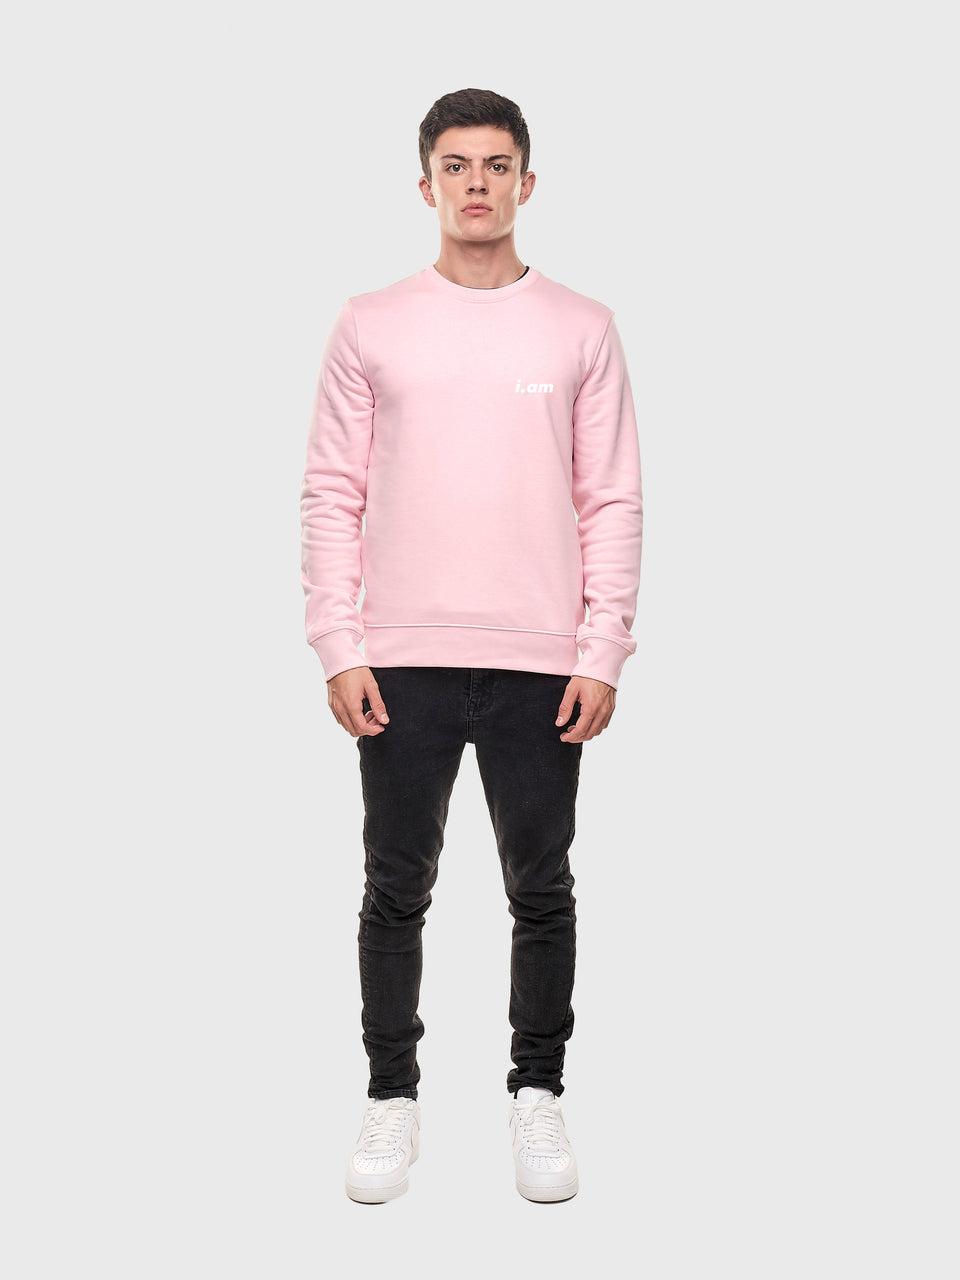 Making it - Pink - Unisex sweatshirt